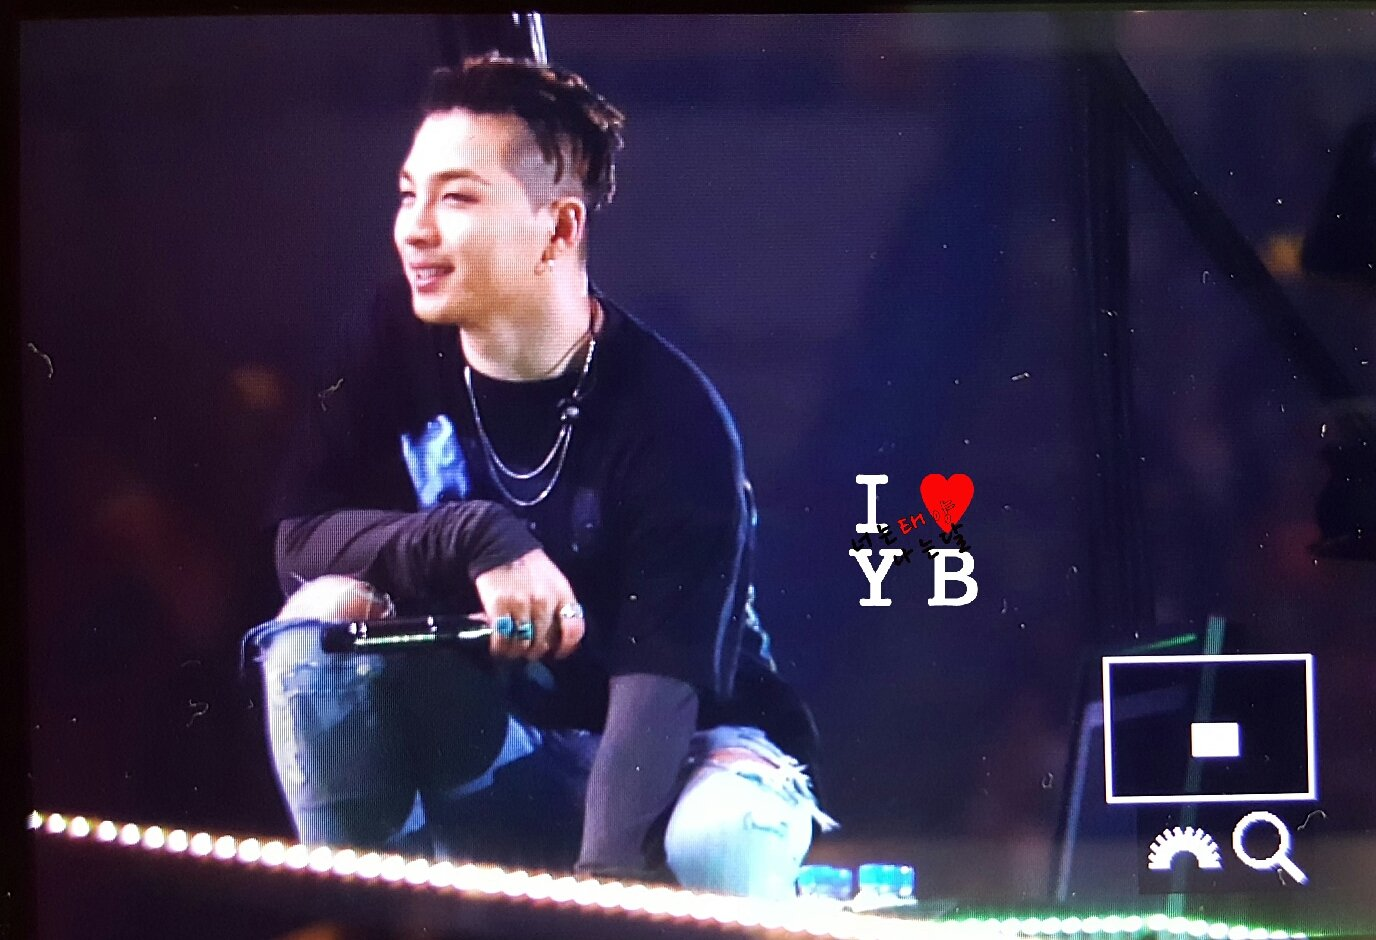 [Photos Videos] 2017-06-03 【BIGBANG SPECIAL EVENT 2017】 (wout T.O.P) Osaka Kyocera Dome Day 1 (35)